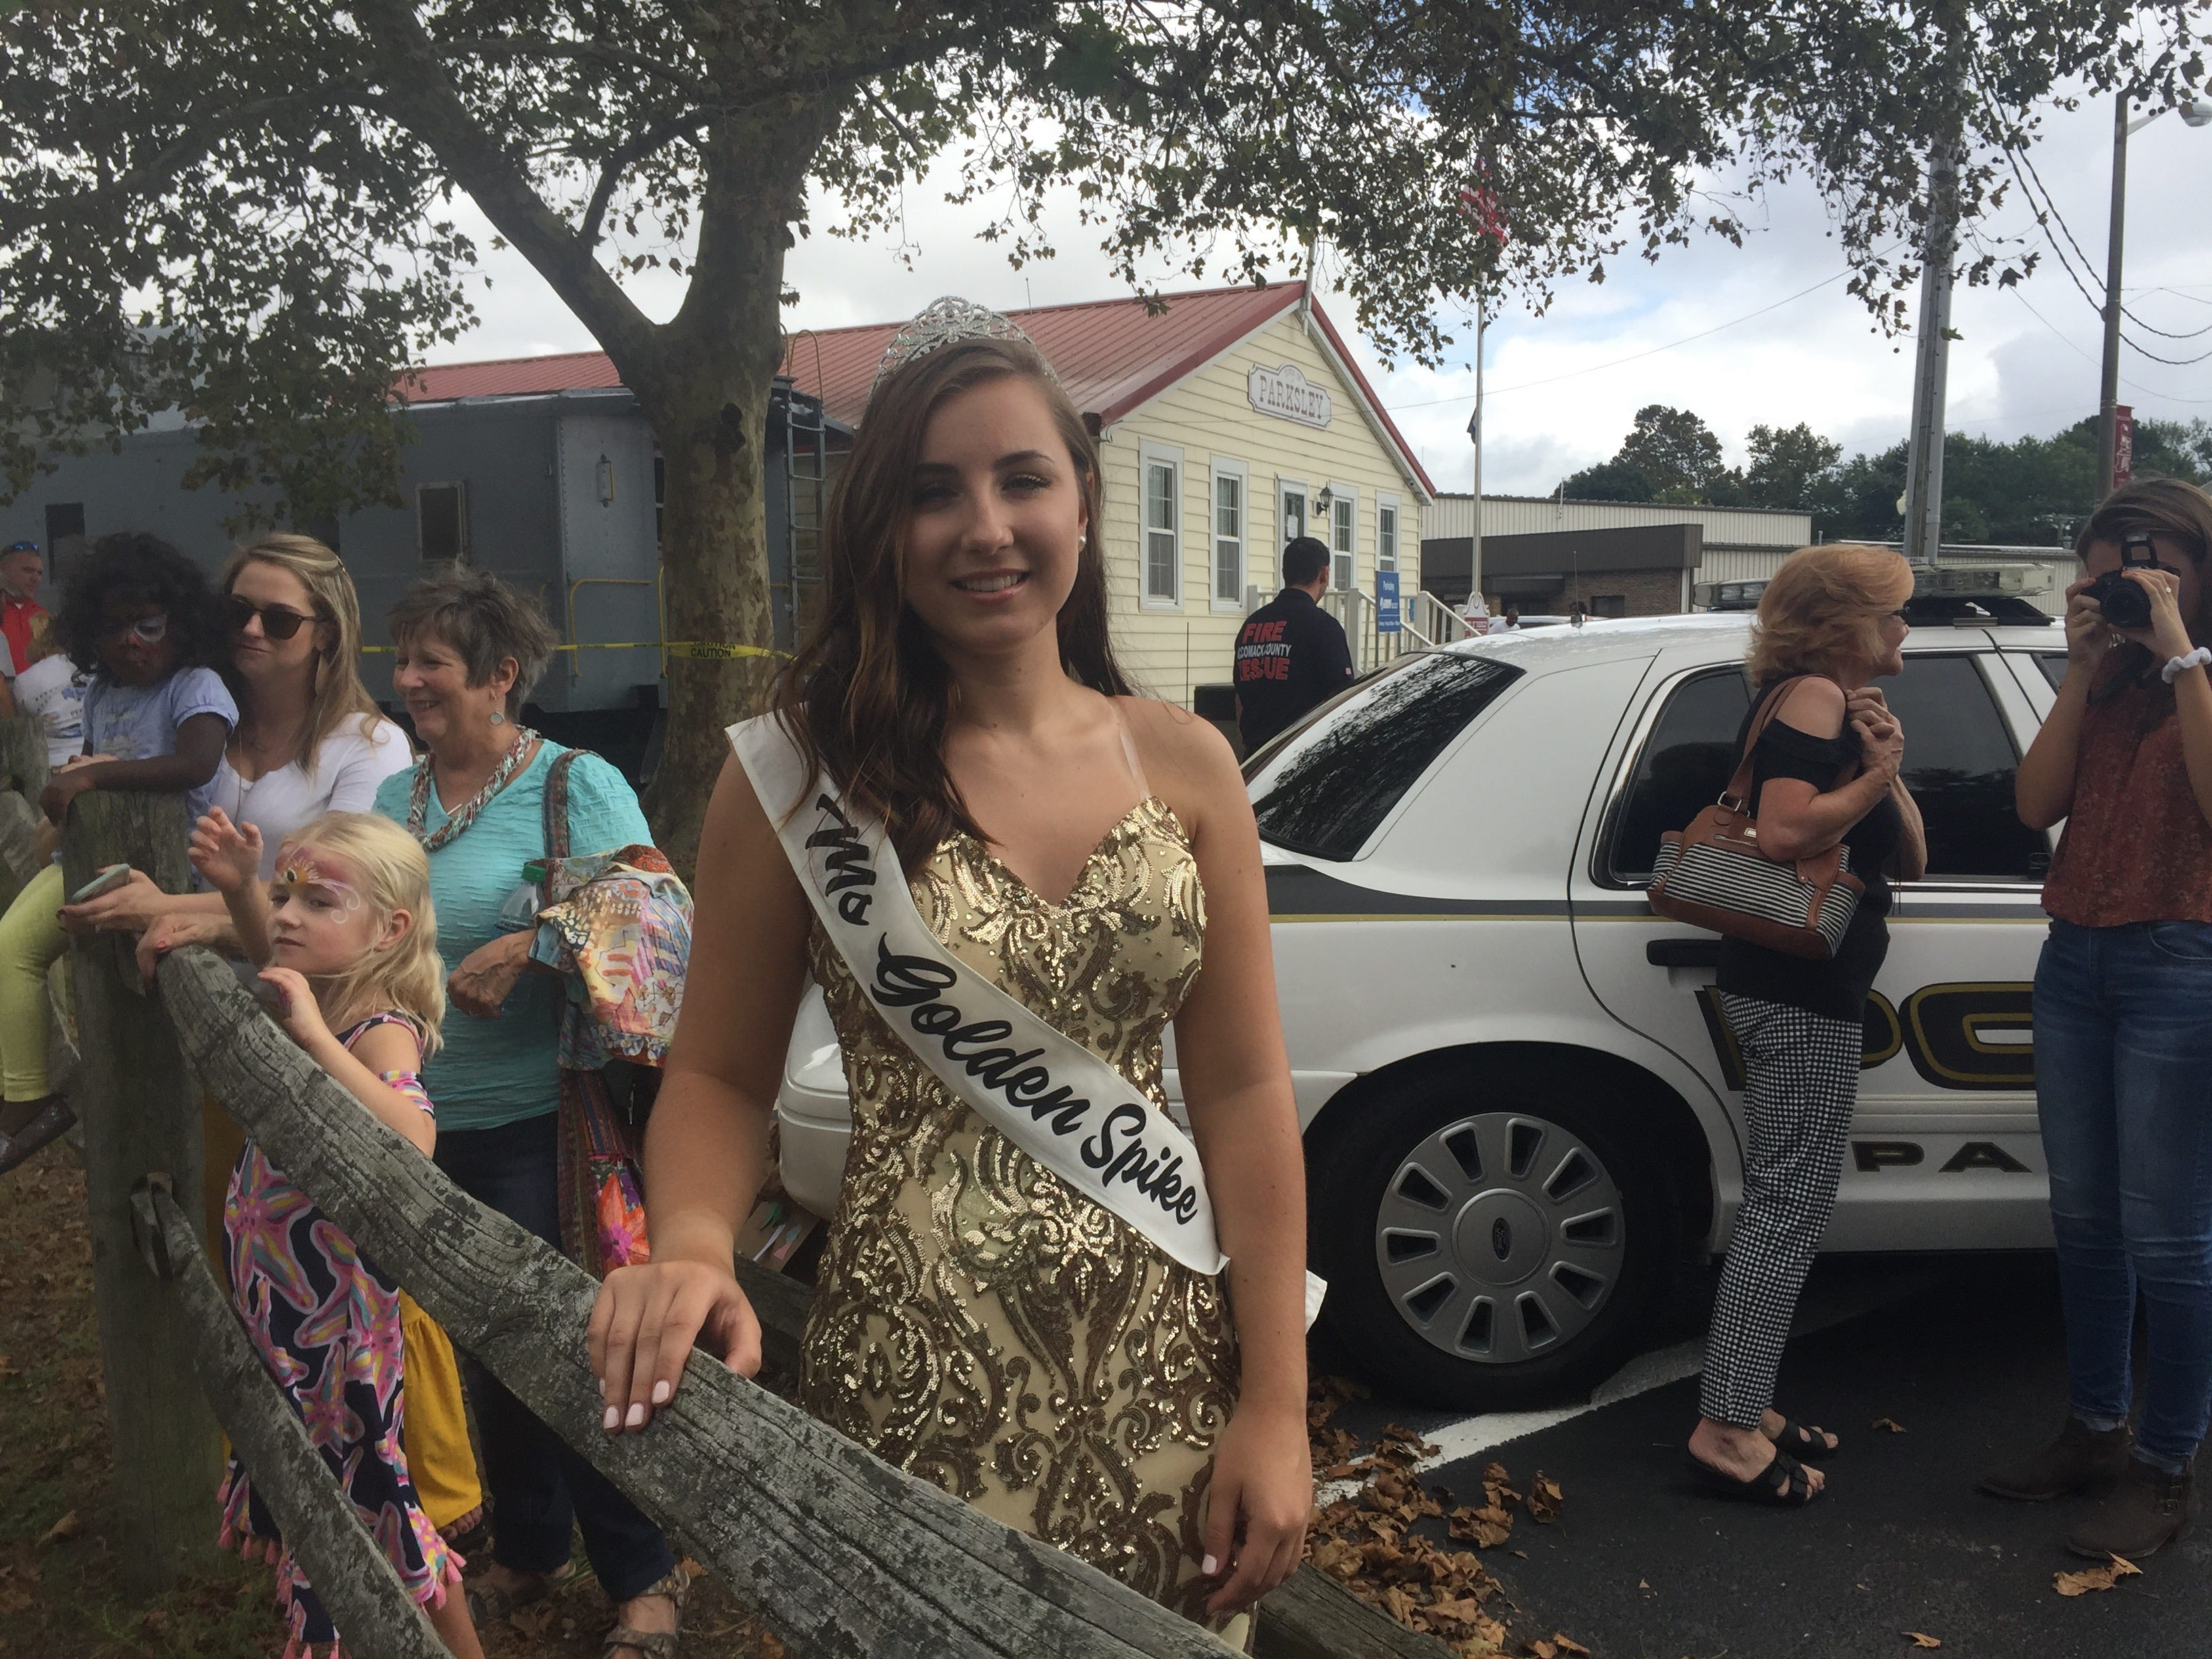 Anna Estelle was chosen Miss Golden Spike for the Golden Spike Railroad Festival in Parksley, Virginia on Saturday, Oct. 6, 2018. The festival was a revival of Parksley Fall Festivals held for many years in the past.